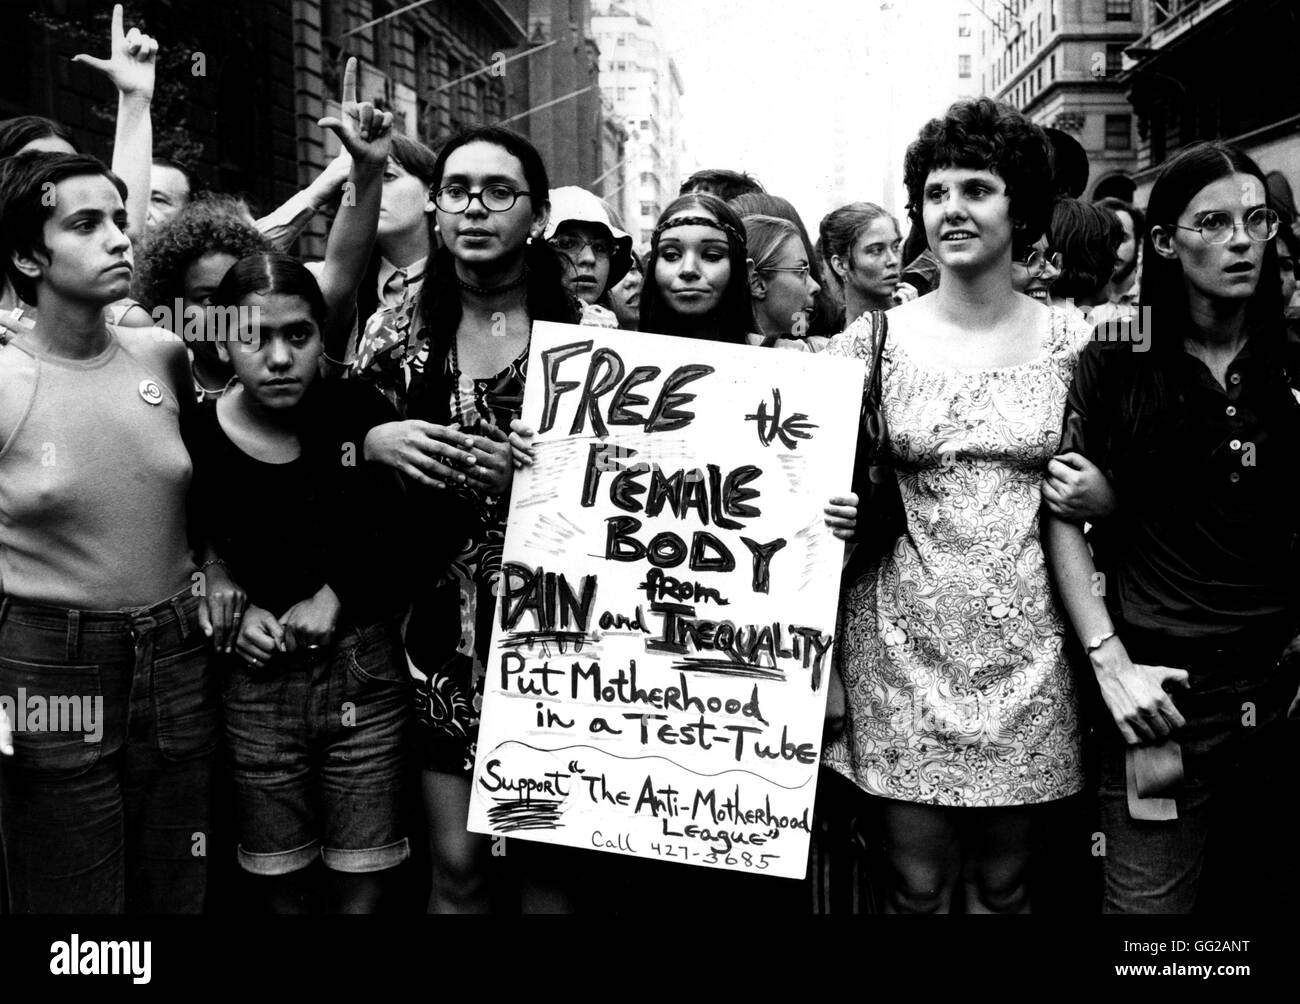 Women's Parade for the Women's Liberation Movement, on 5th Avenue, in New York Summer 1970 United States - Stock Image